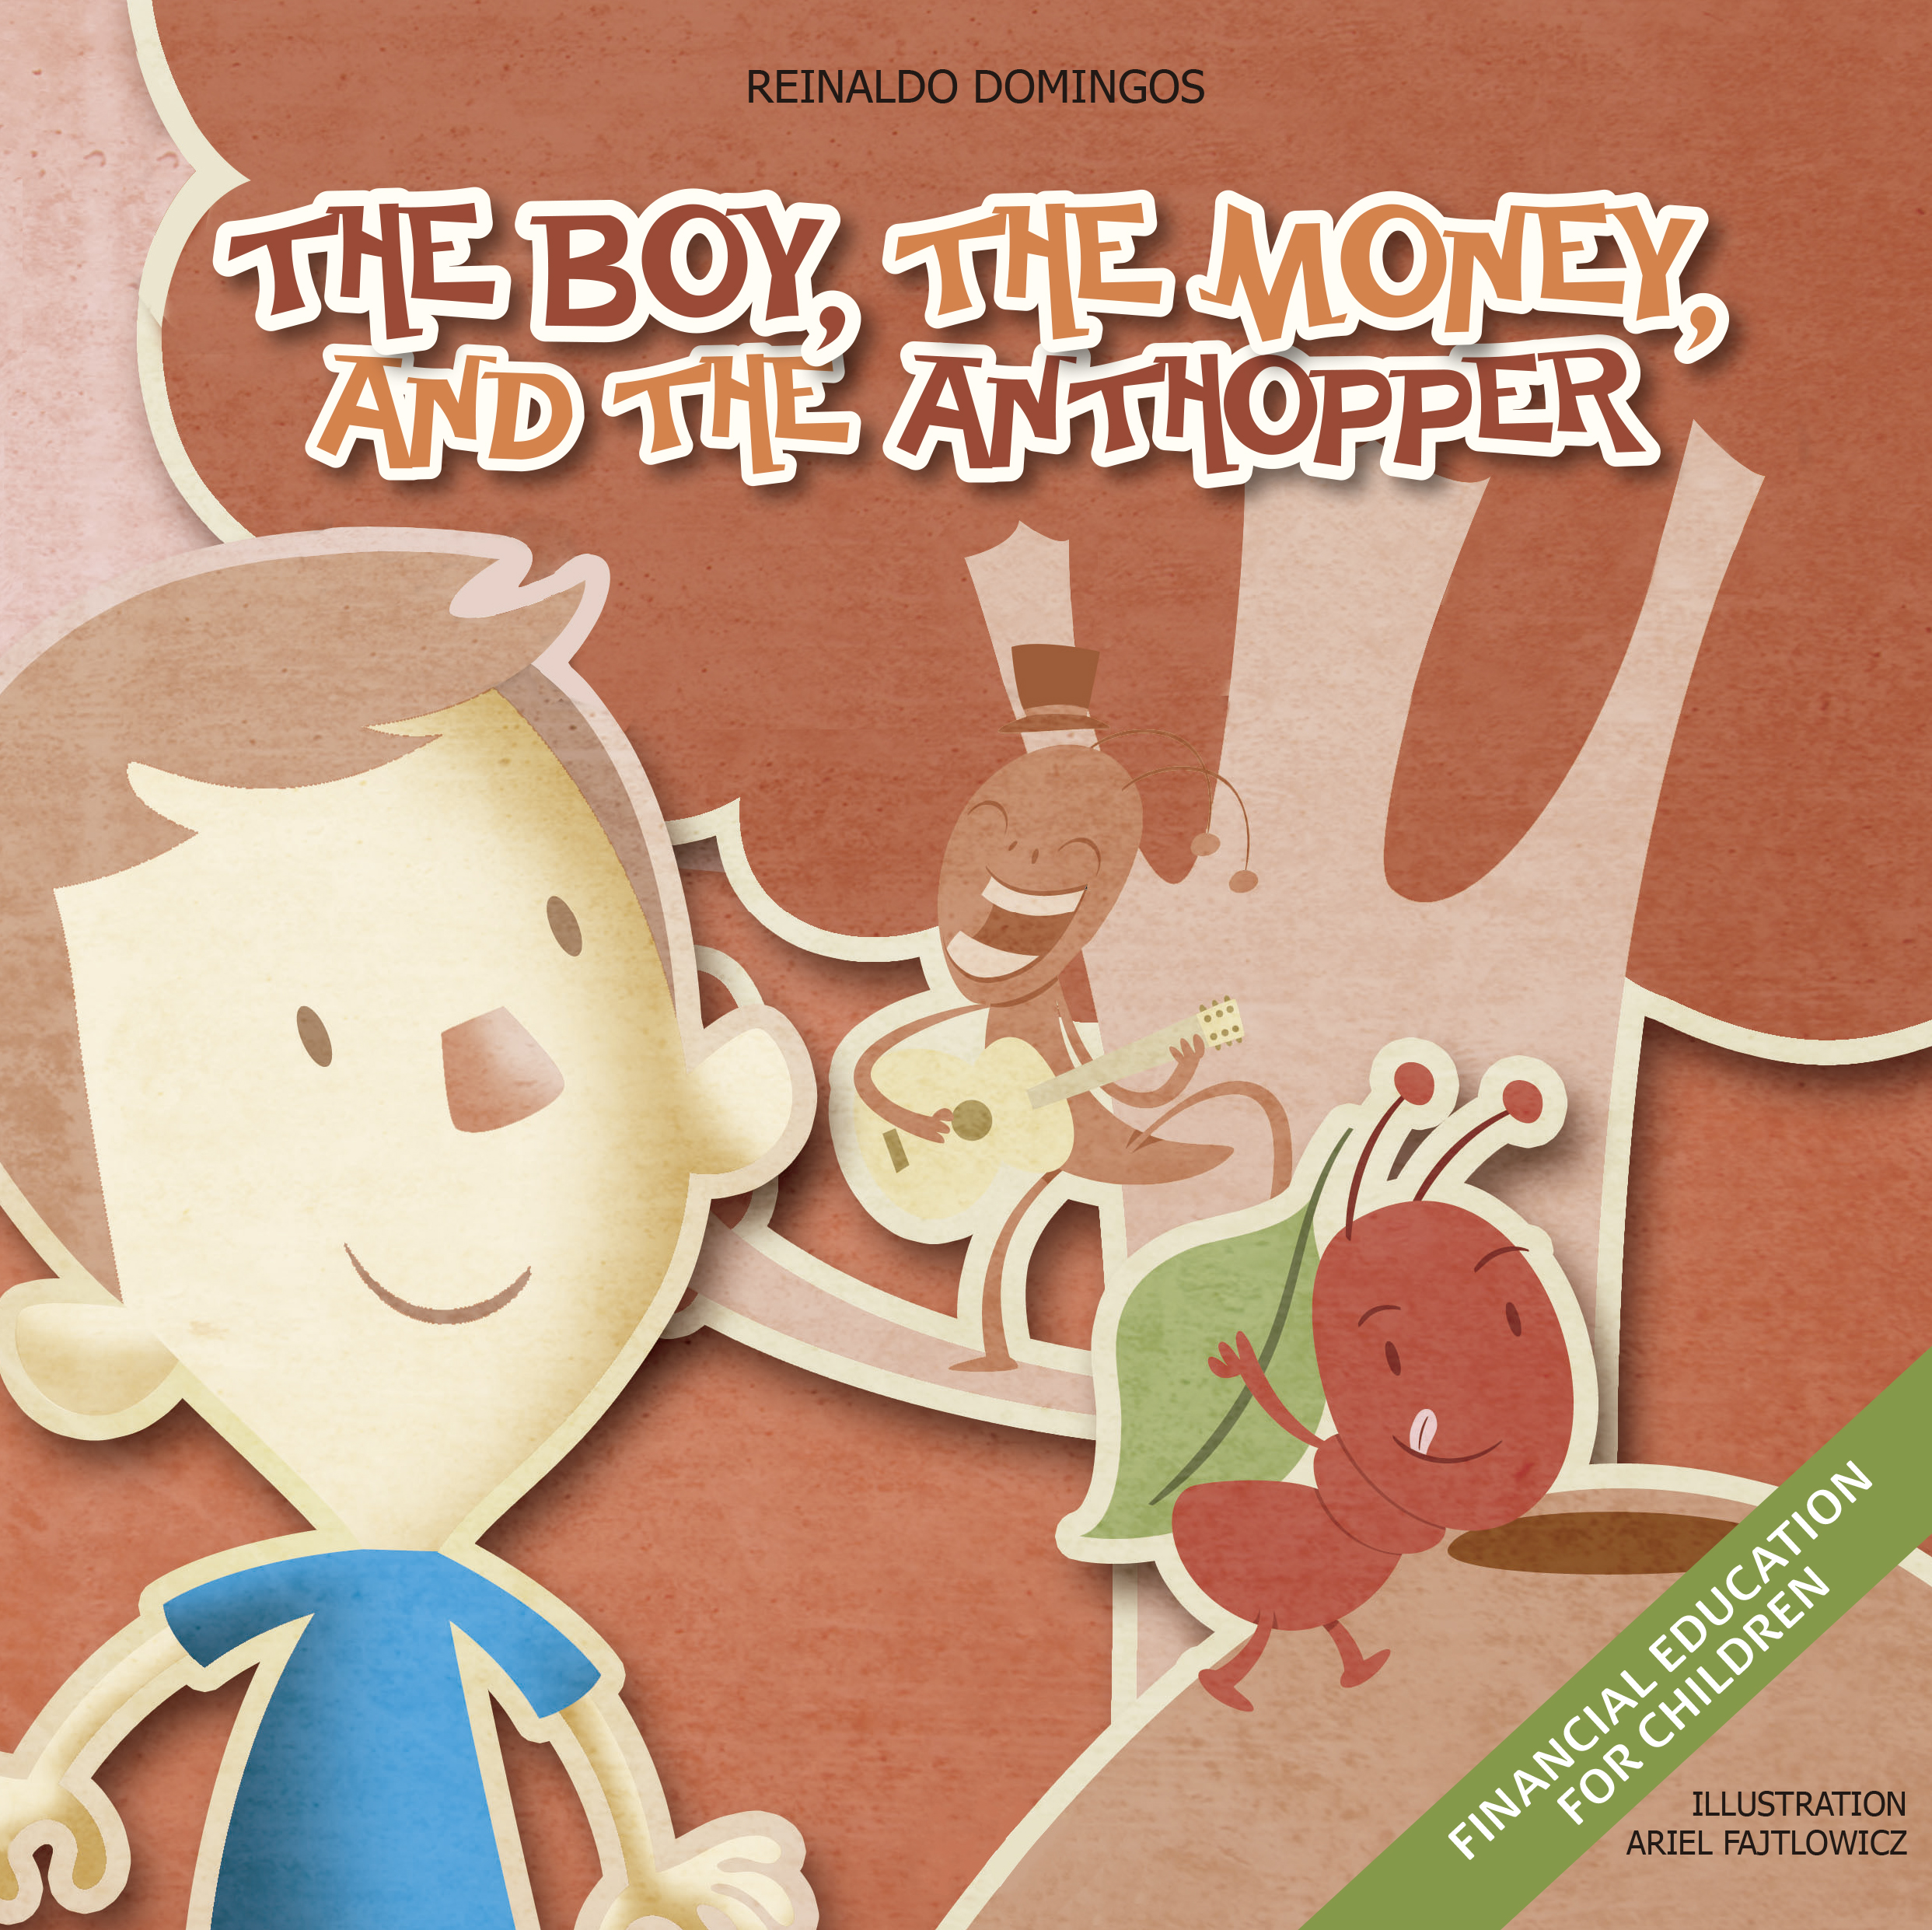 The Boy, the Money and the Anthopper